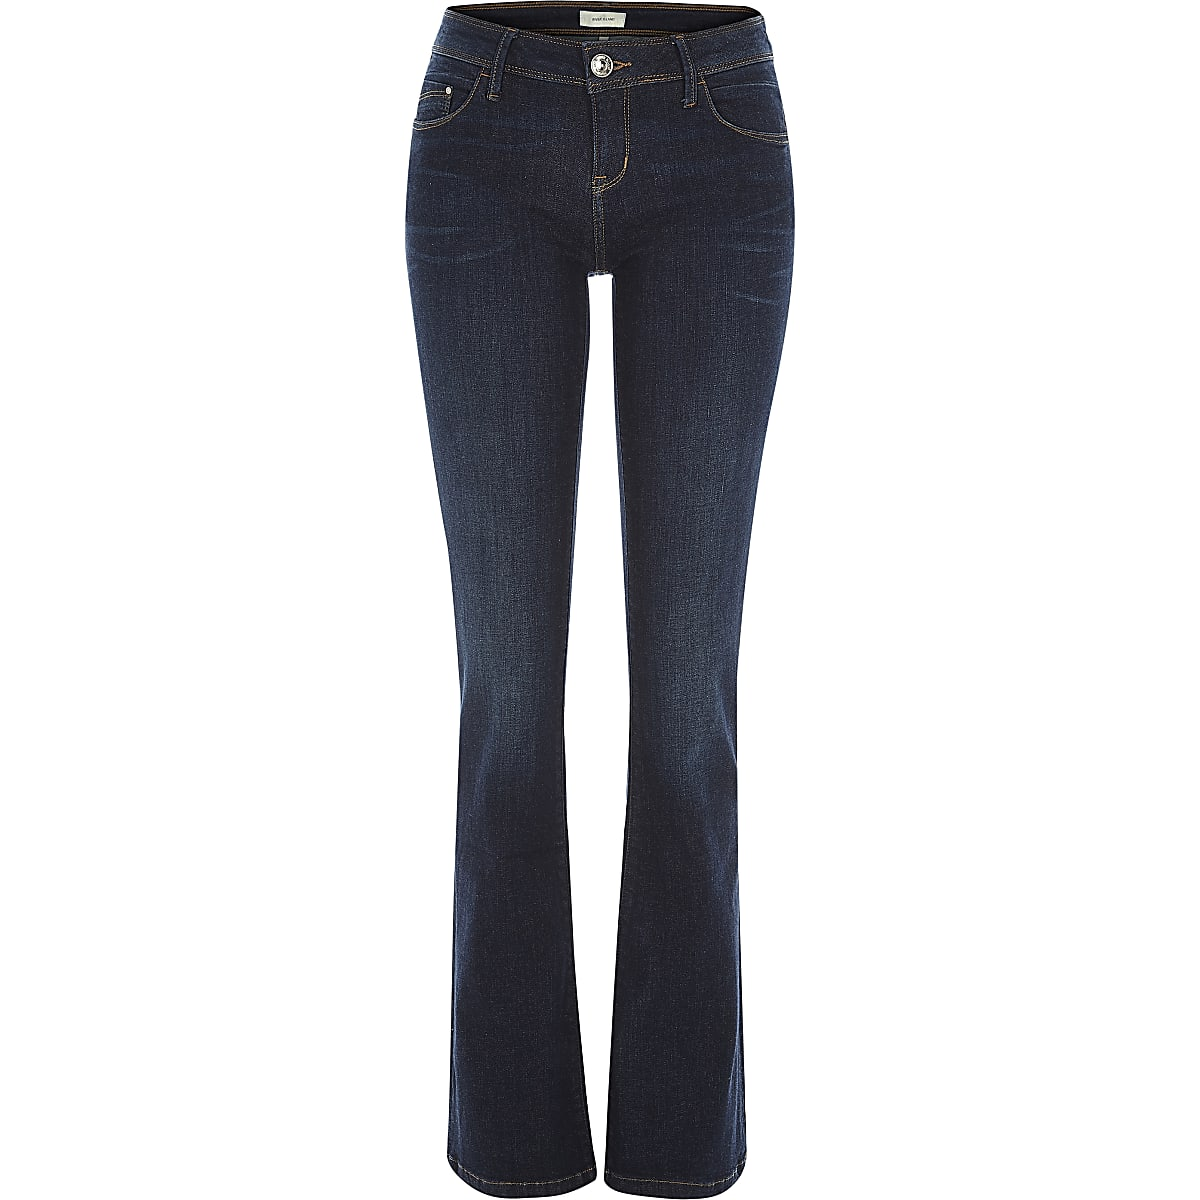 ef63984f517 Dark wash Hailey low rise bootcut jeans - Bootcut & Flared Jeans - Jeans -  women